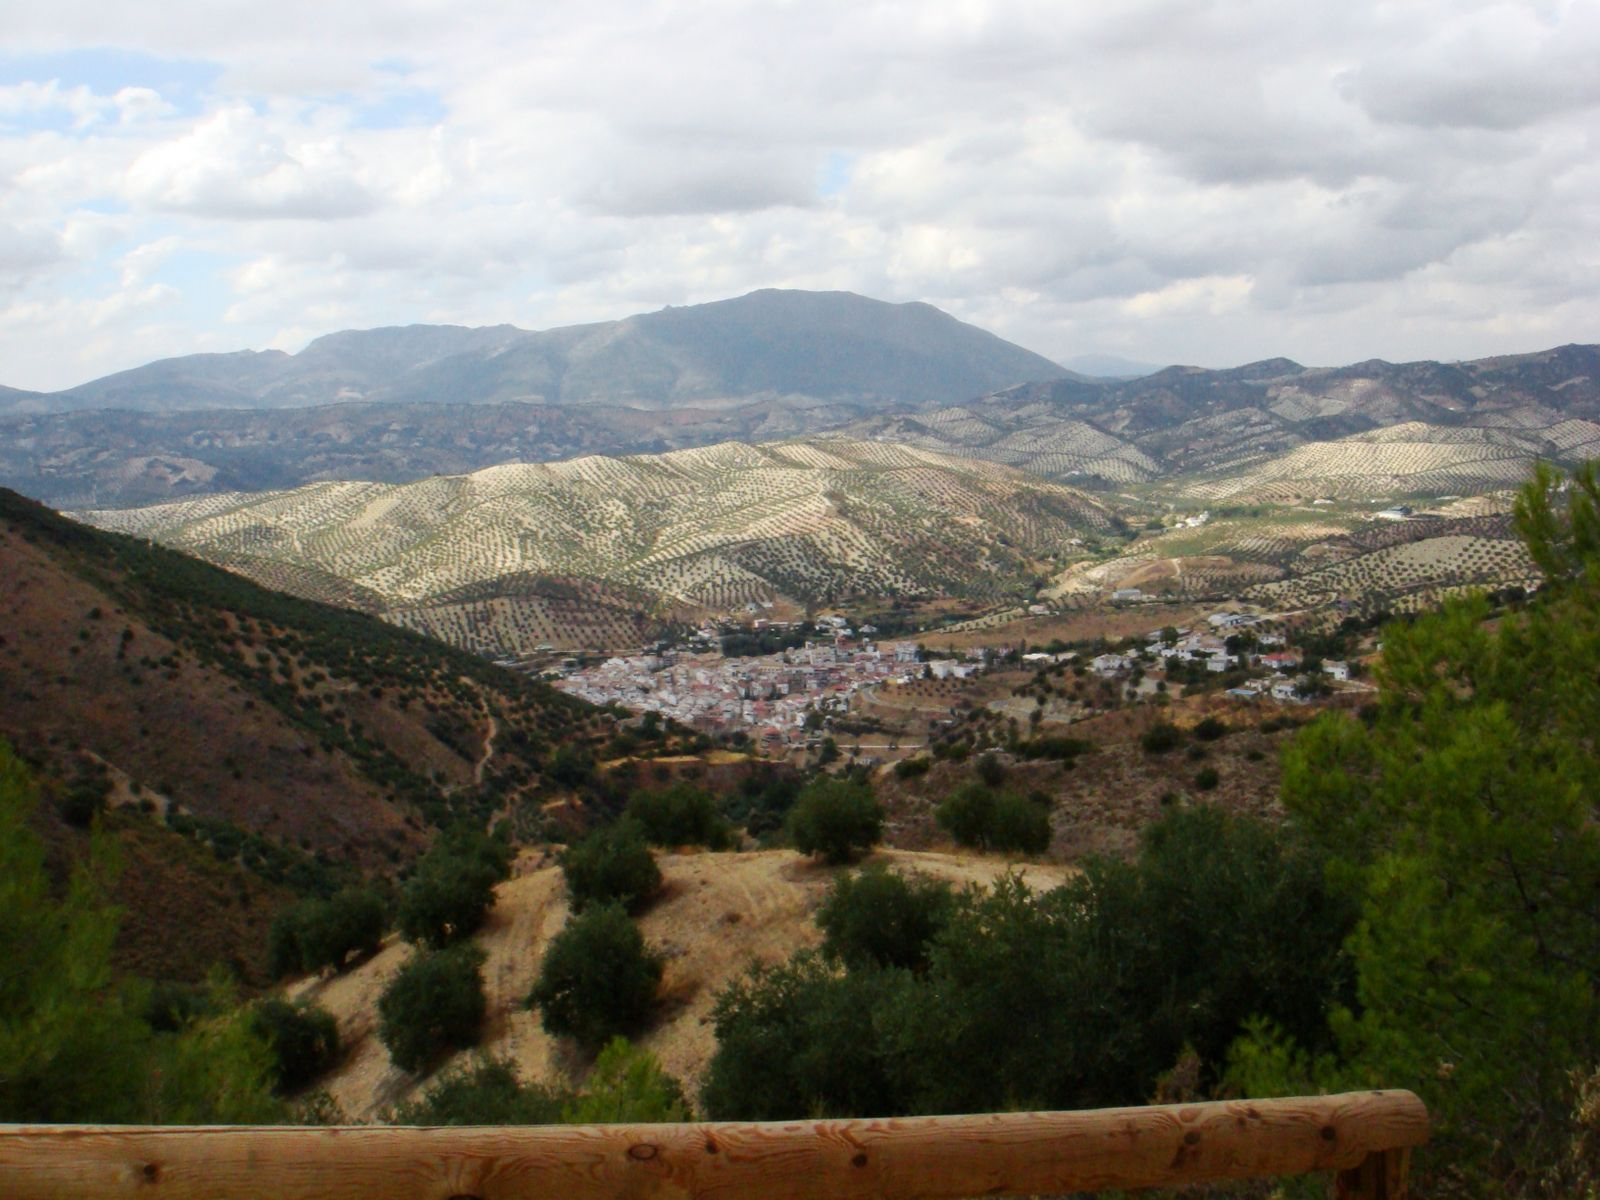 Typical village in hilly Andalusia